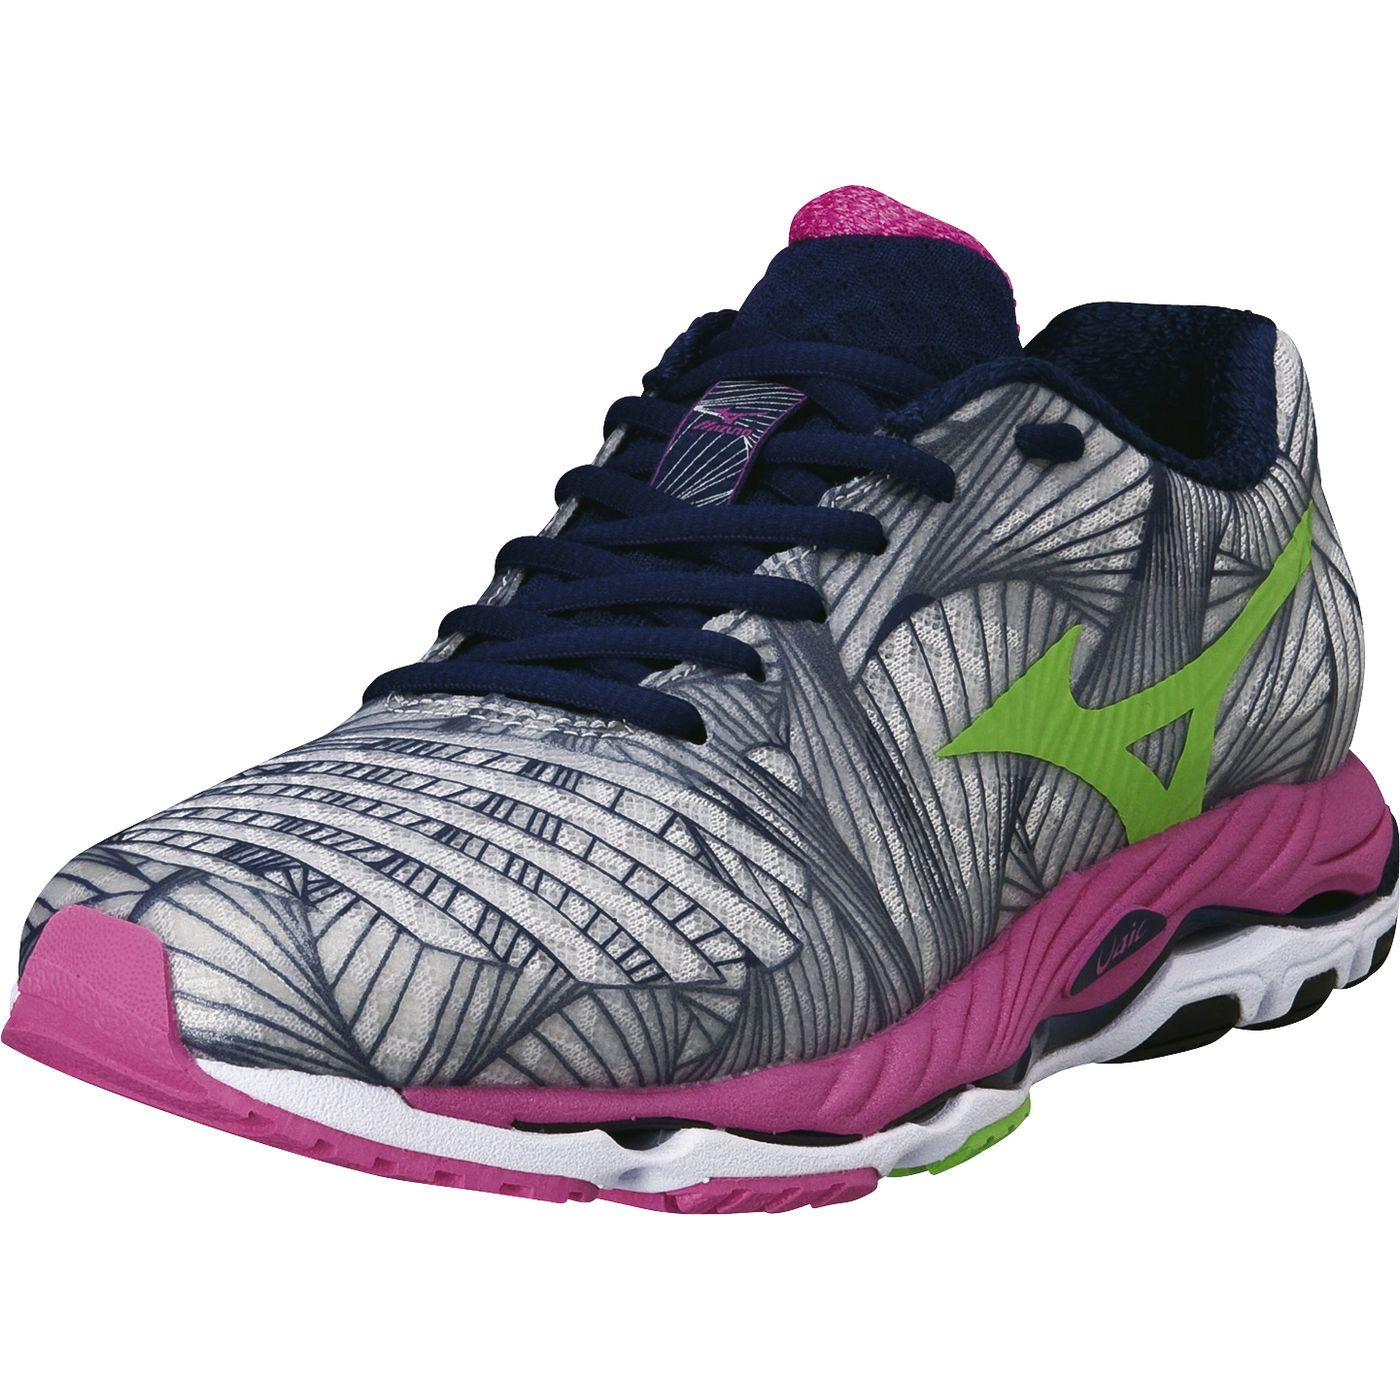 Grey Sports Mizuno Womens Wave Paradox 5 Running Shoes Trainers Sneakers